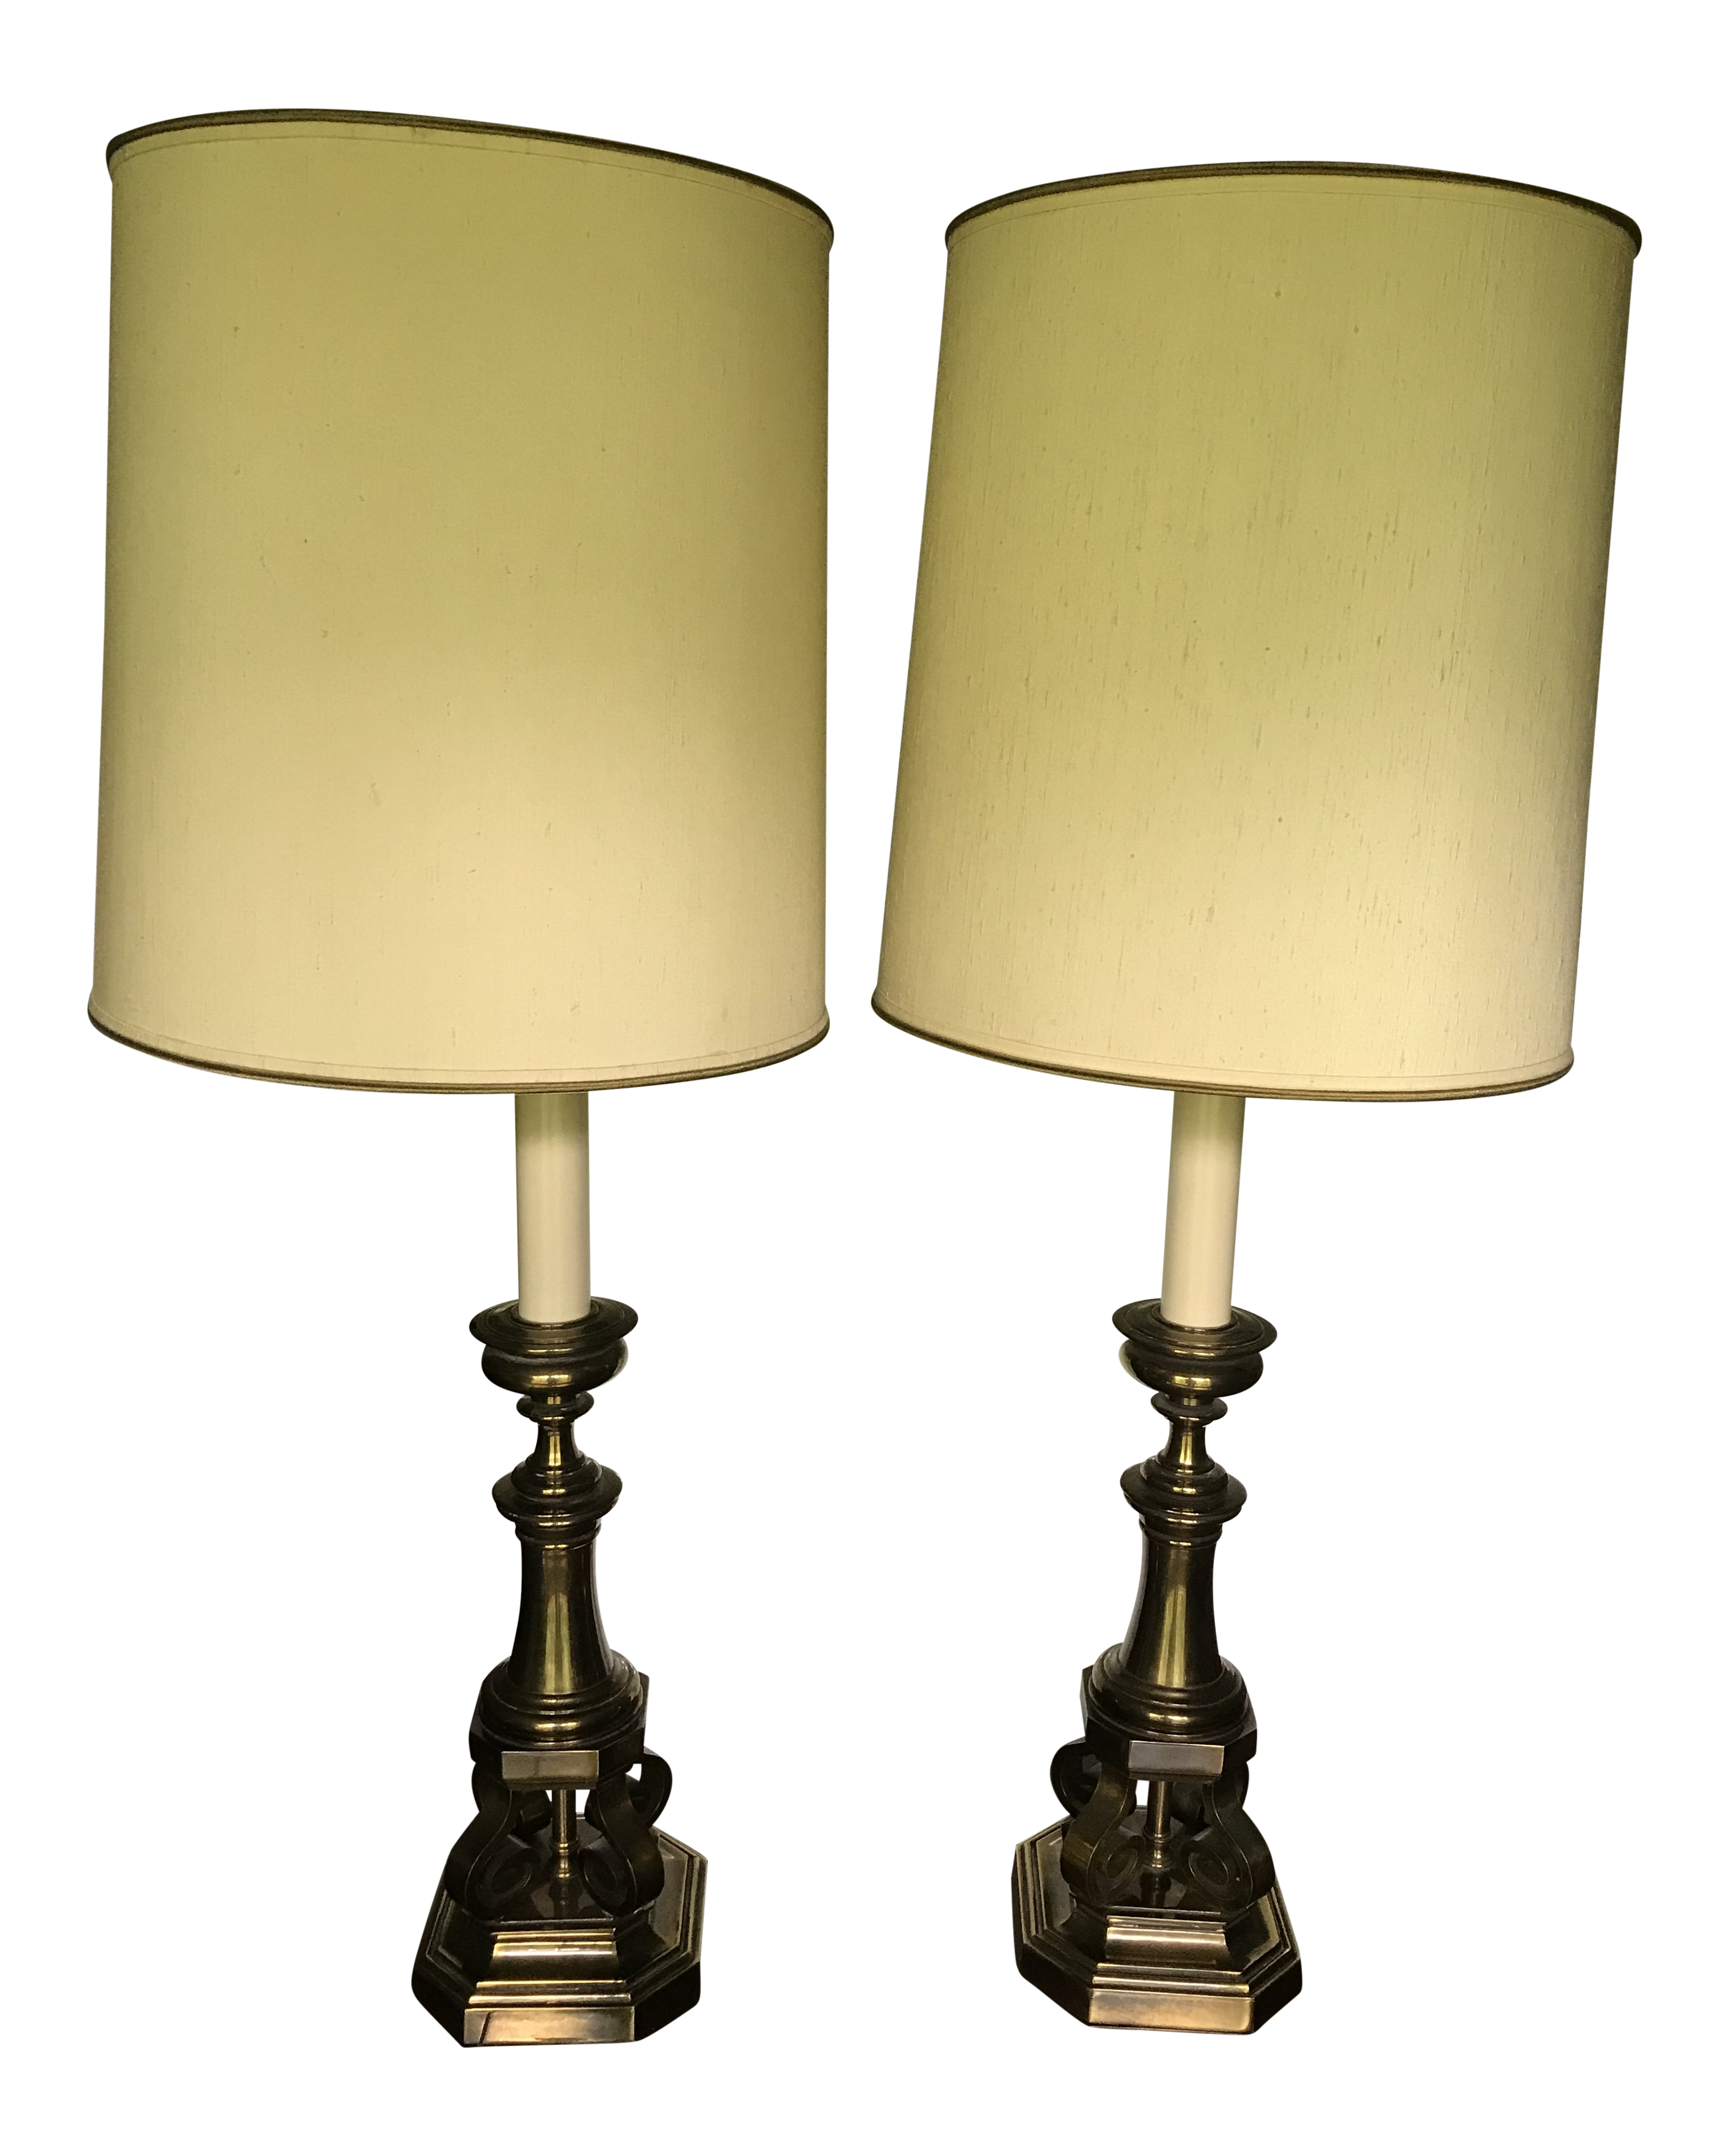 1950s Vintage Mid Century Modern Brass Table Lamp With Cream Shades